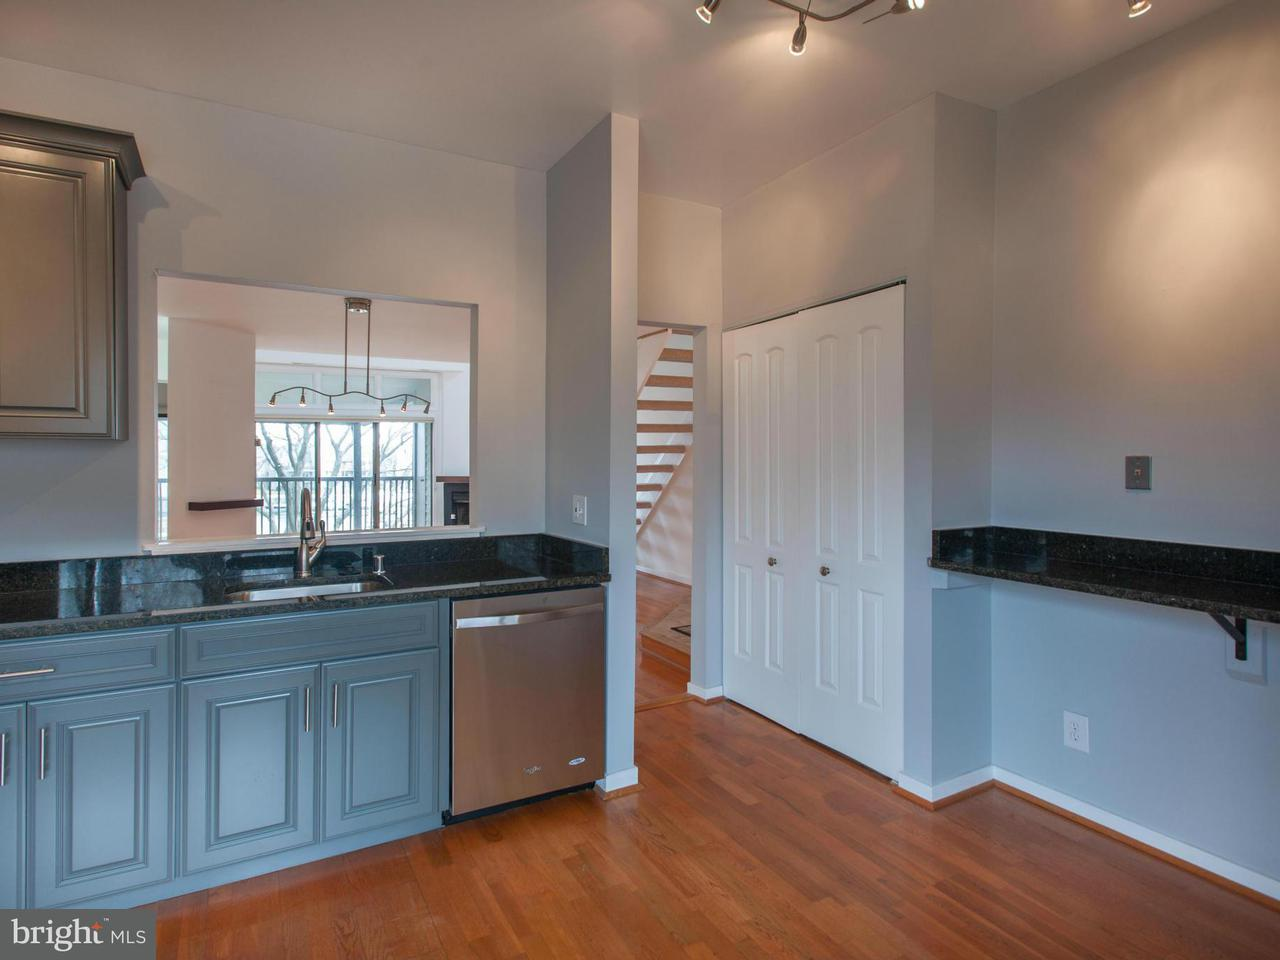 Additional photo for property listing at 7024 CHANNEL VILLAGE CT #202 7024 CHANNEL VILLAGE CT #202 Annapolis, Maryland 21403 United States